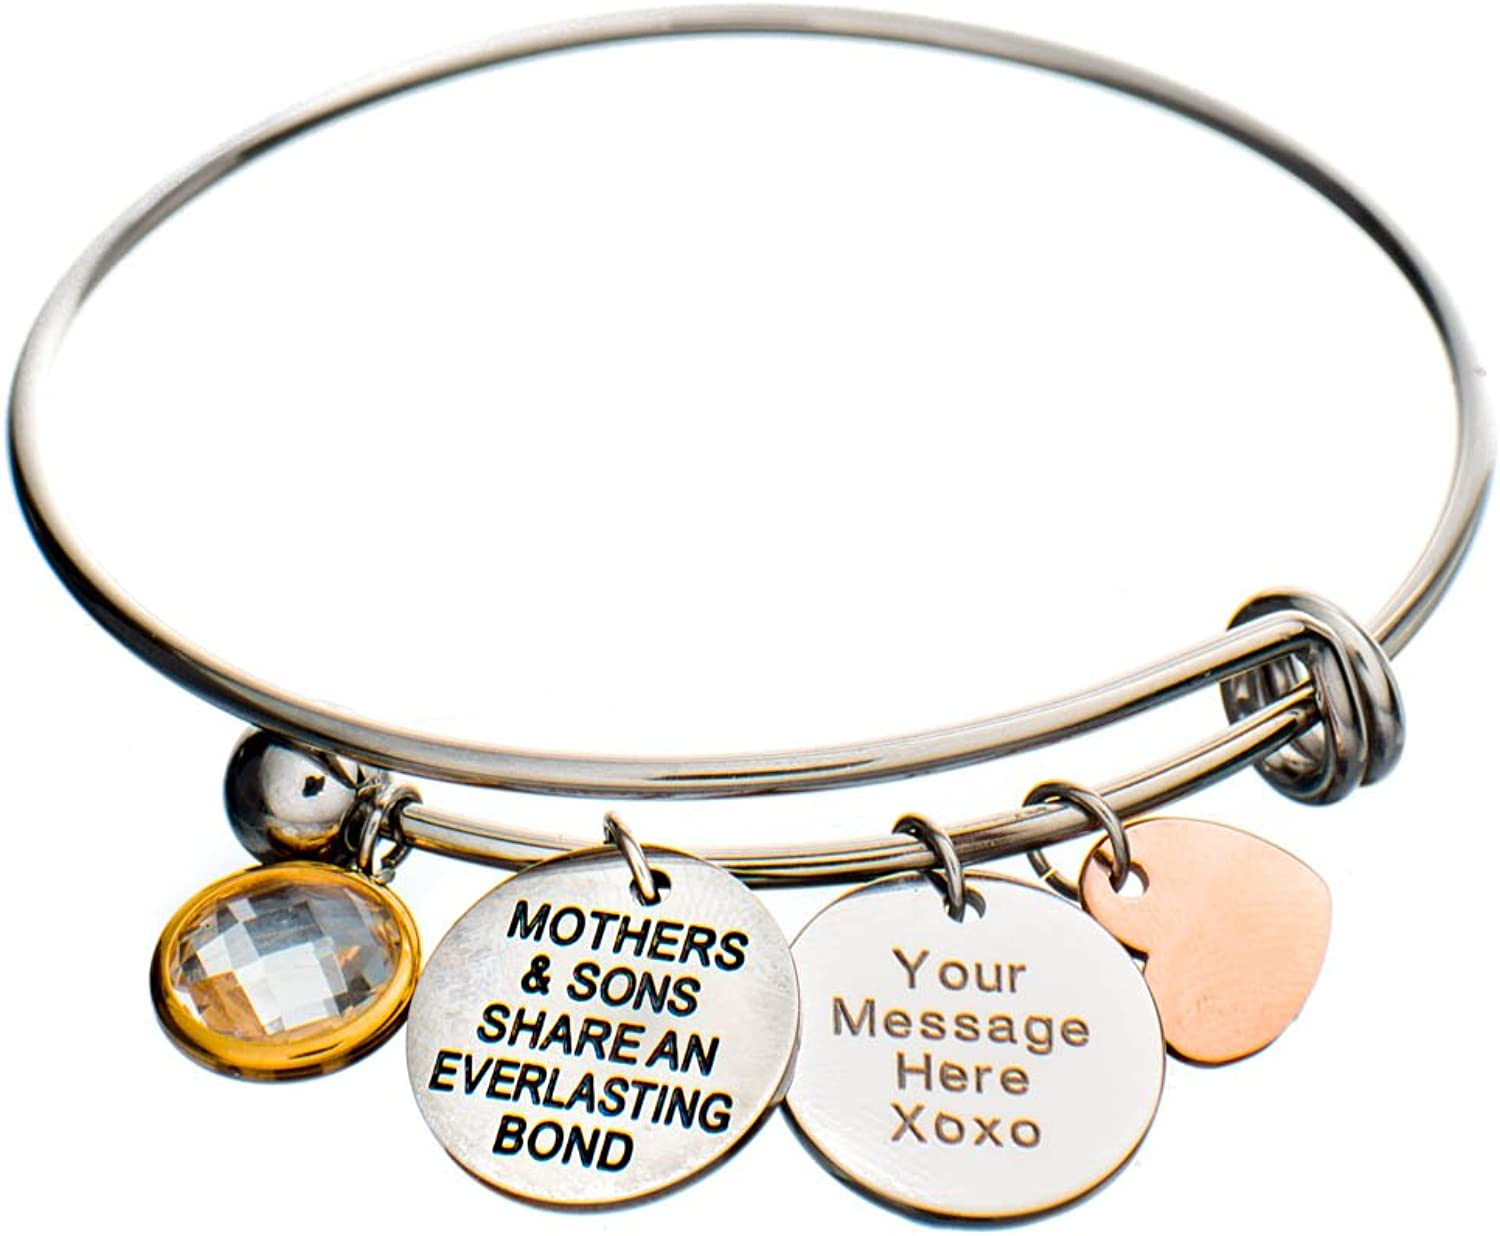 Jewelry Nexus Mothers Sons Share Everlasting an Challenge the lowest price of Japan Bond Cha Heart Max 71% OFF